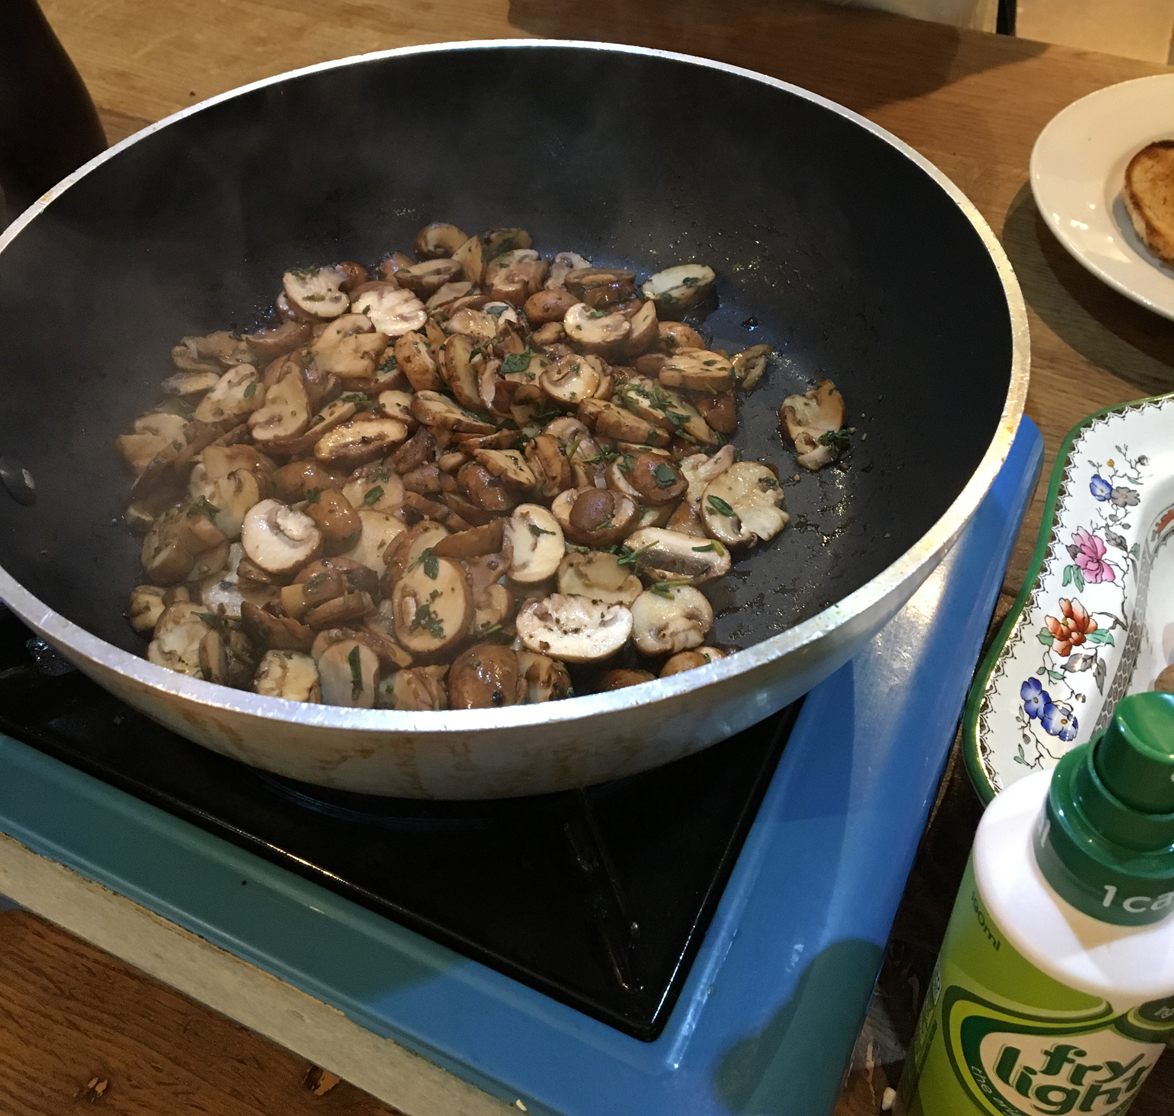 Mushrooms cooking in a pan